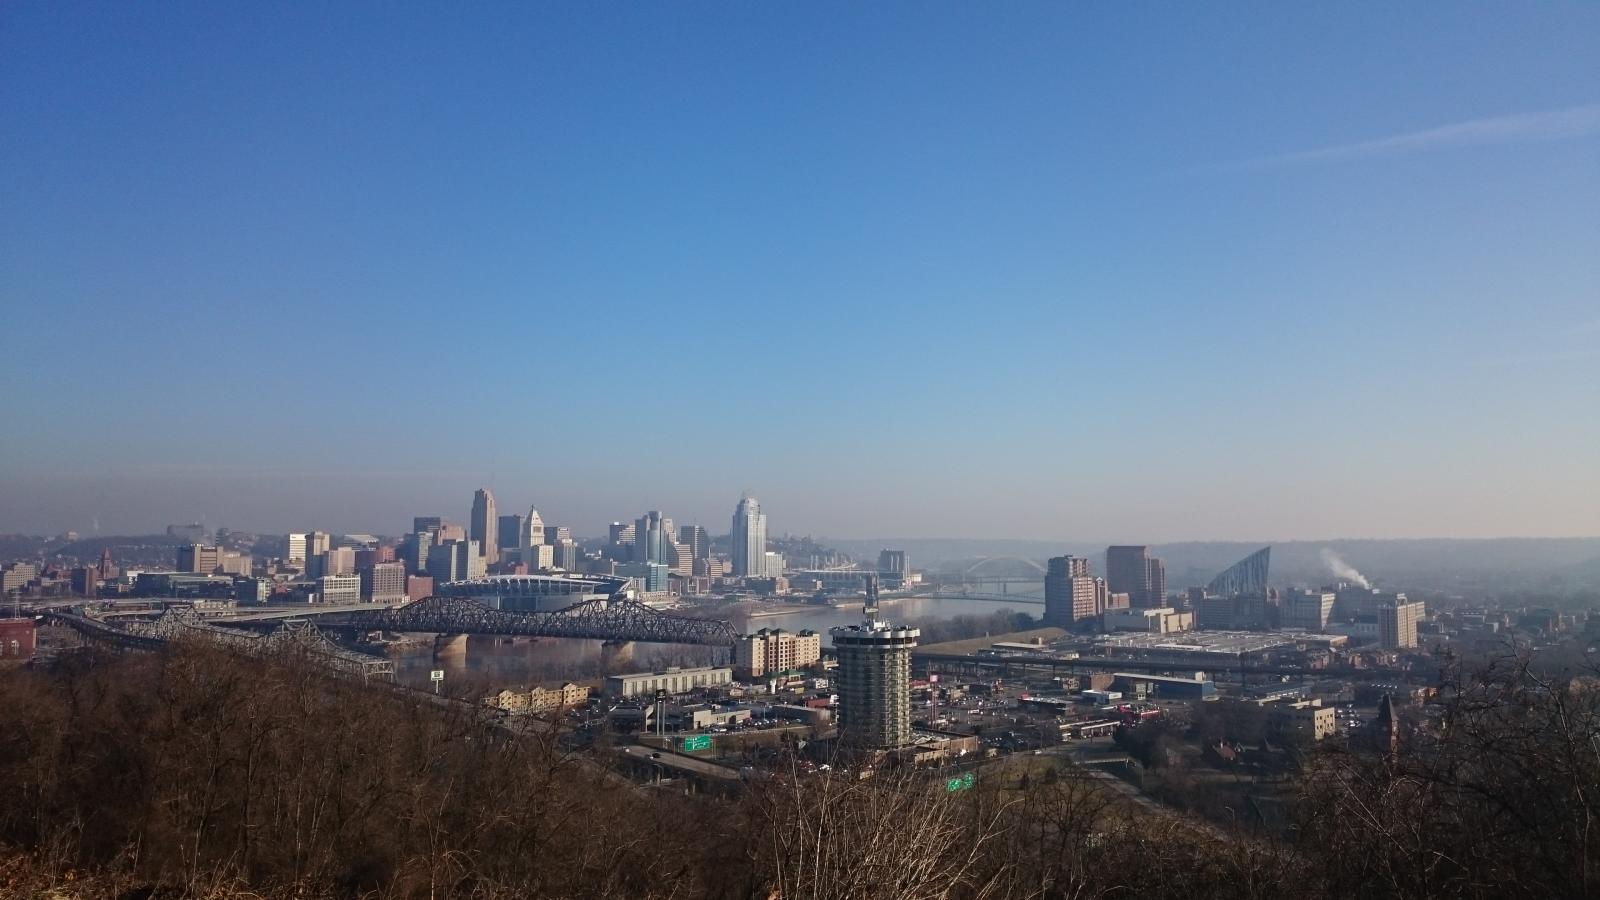 Cincinnati, OH and Covington, KY skylines from Devou Park.